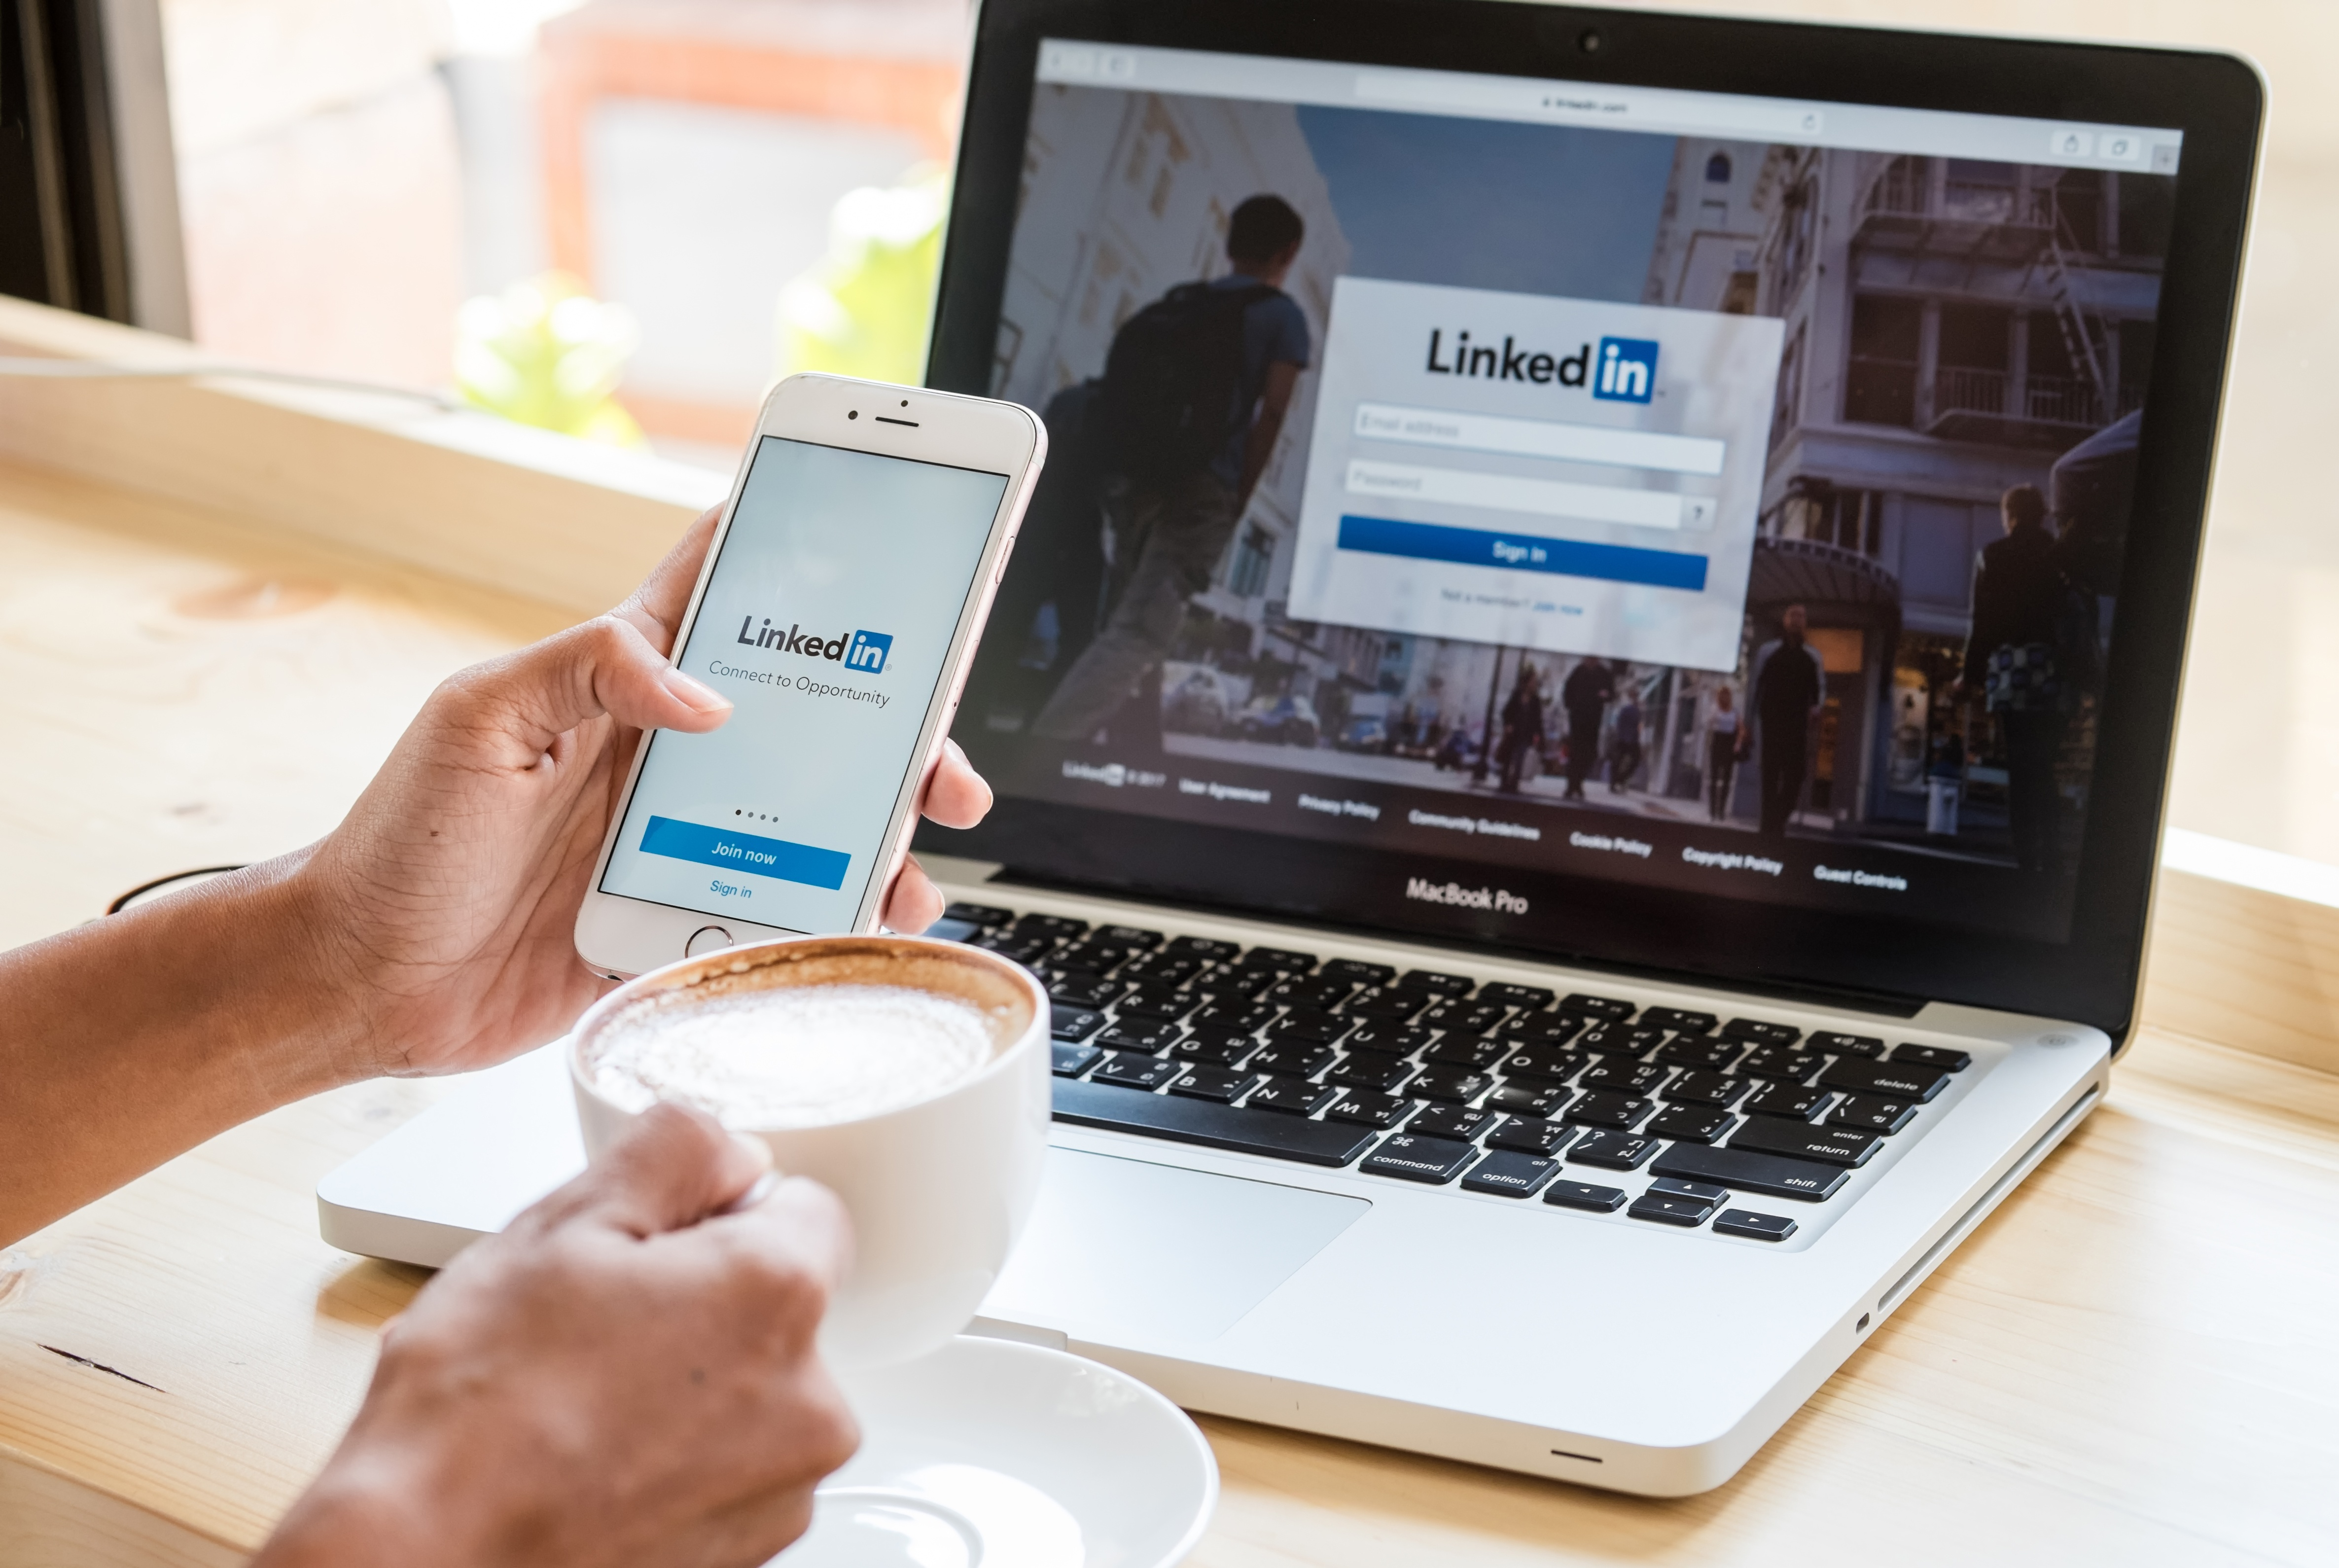 How To Not Be Annoying On LinkedIn